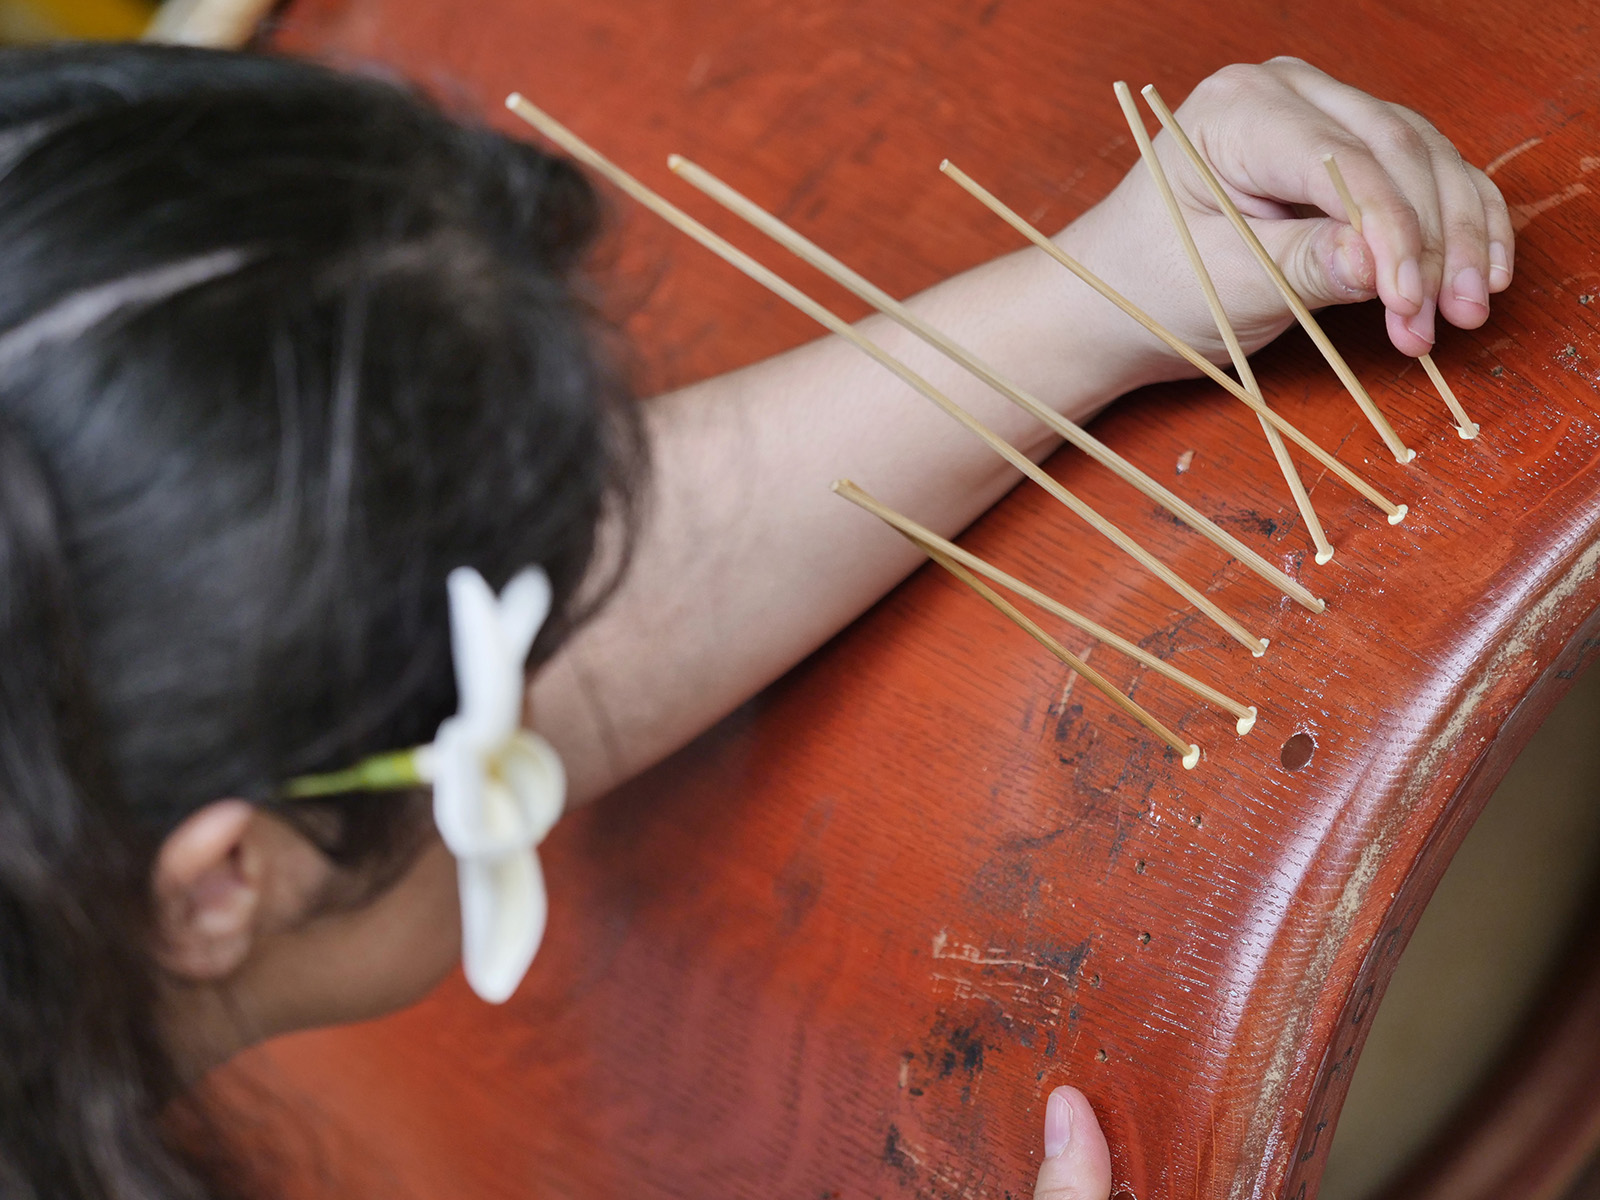 <p>Lani Villanueva glues thin bamboo sticks into holes left by the tacks that secure the drum skins in place. New holes will be drilled to secure the fresh skin once it has been stretched and shaped onto the drum barrel.</p>